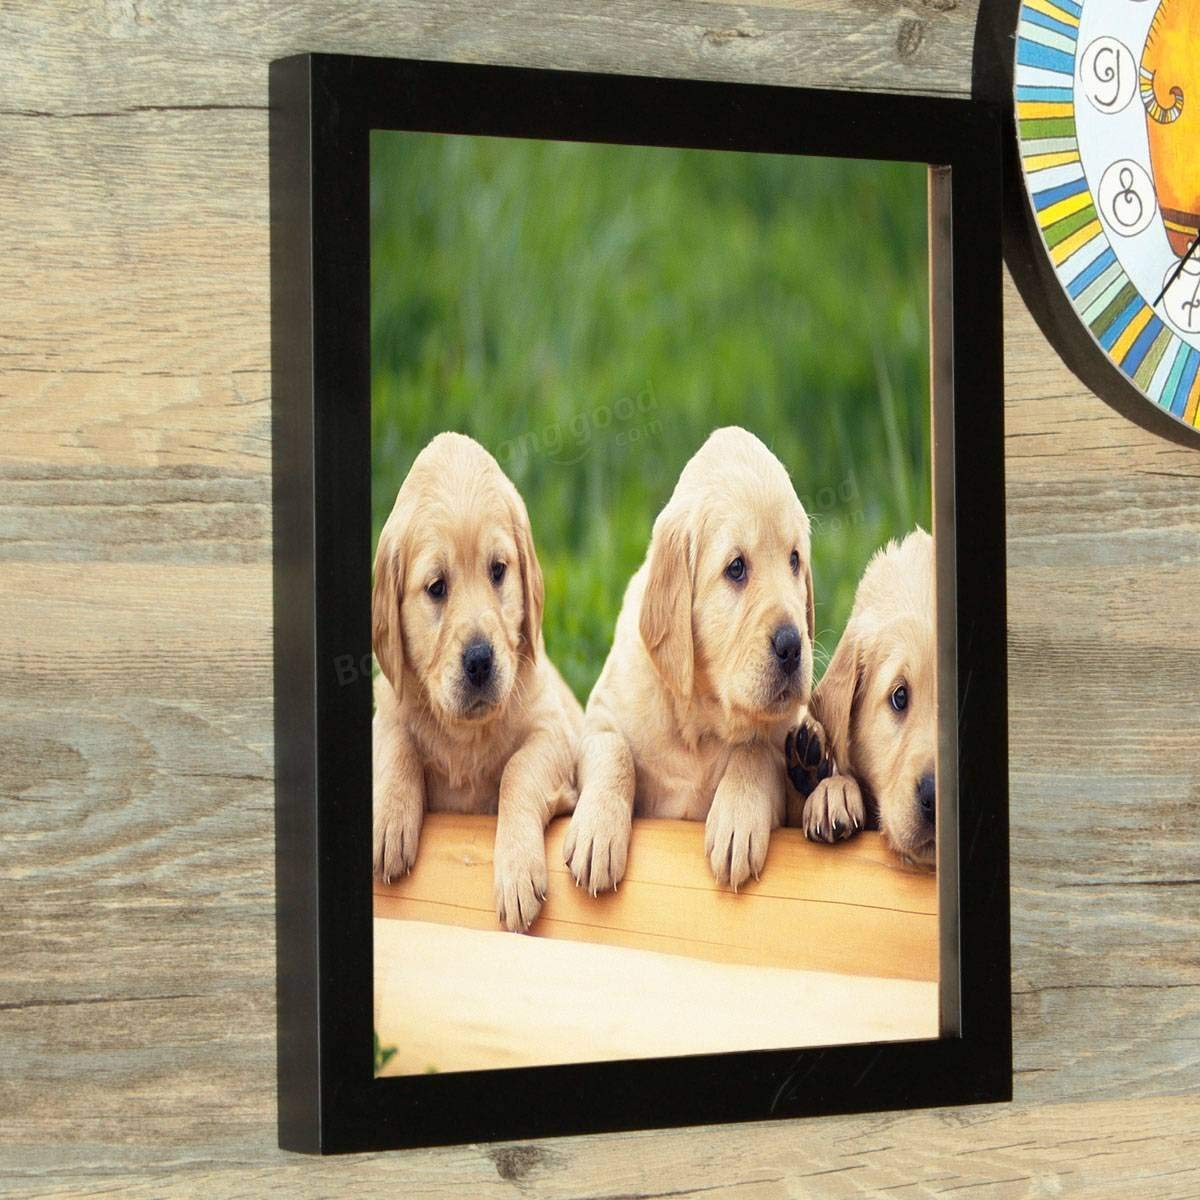 Hanging Picture Frame - Hanging Photo Frame - 10 Inch Hanging Picture Frames Wood Photo Frame Photo Wall Home Wall Decor Pendant Type Frame - Black ( Hanging Wood Frame )